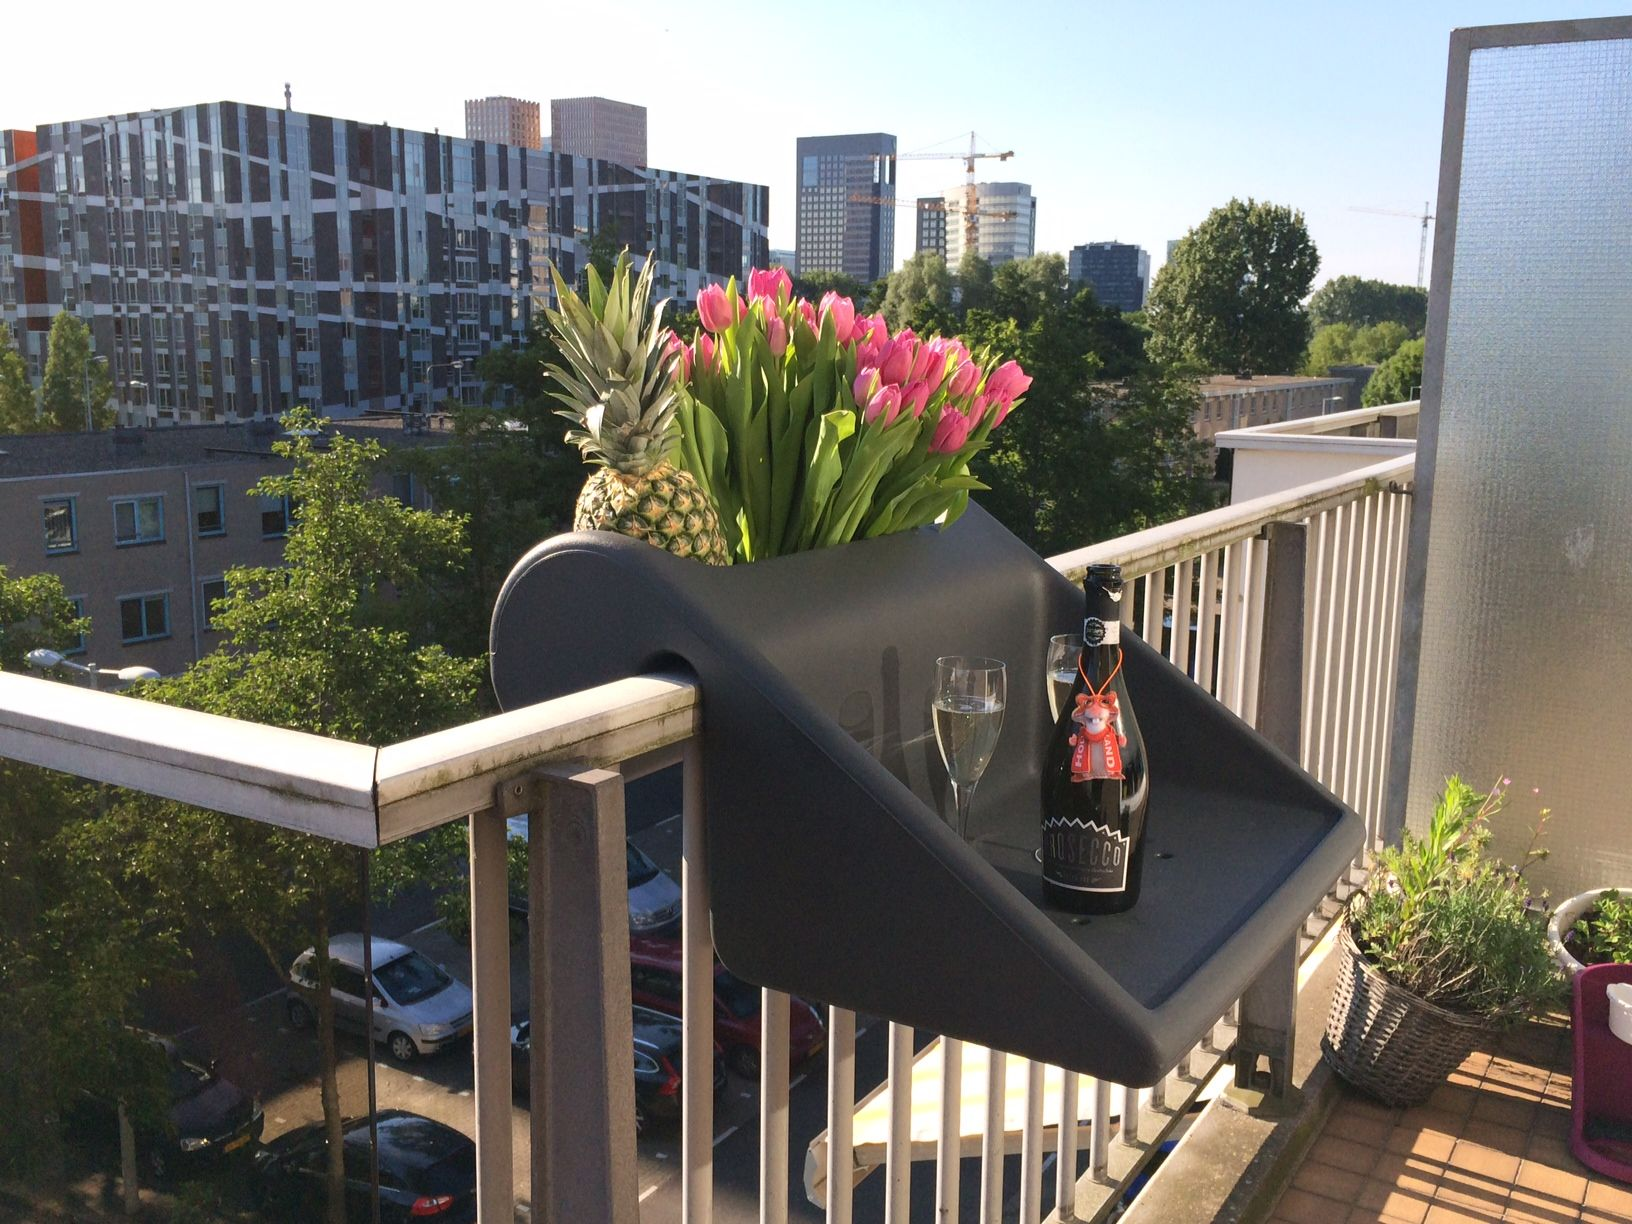 Balcony design ideas in apartment grenoble france home design and - Space Saving Balcony Table And Planter Combo